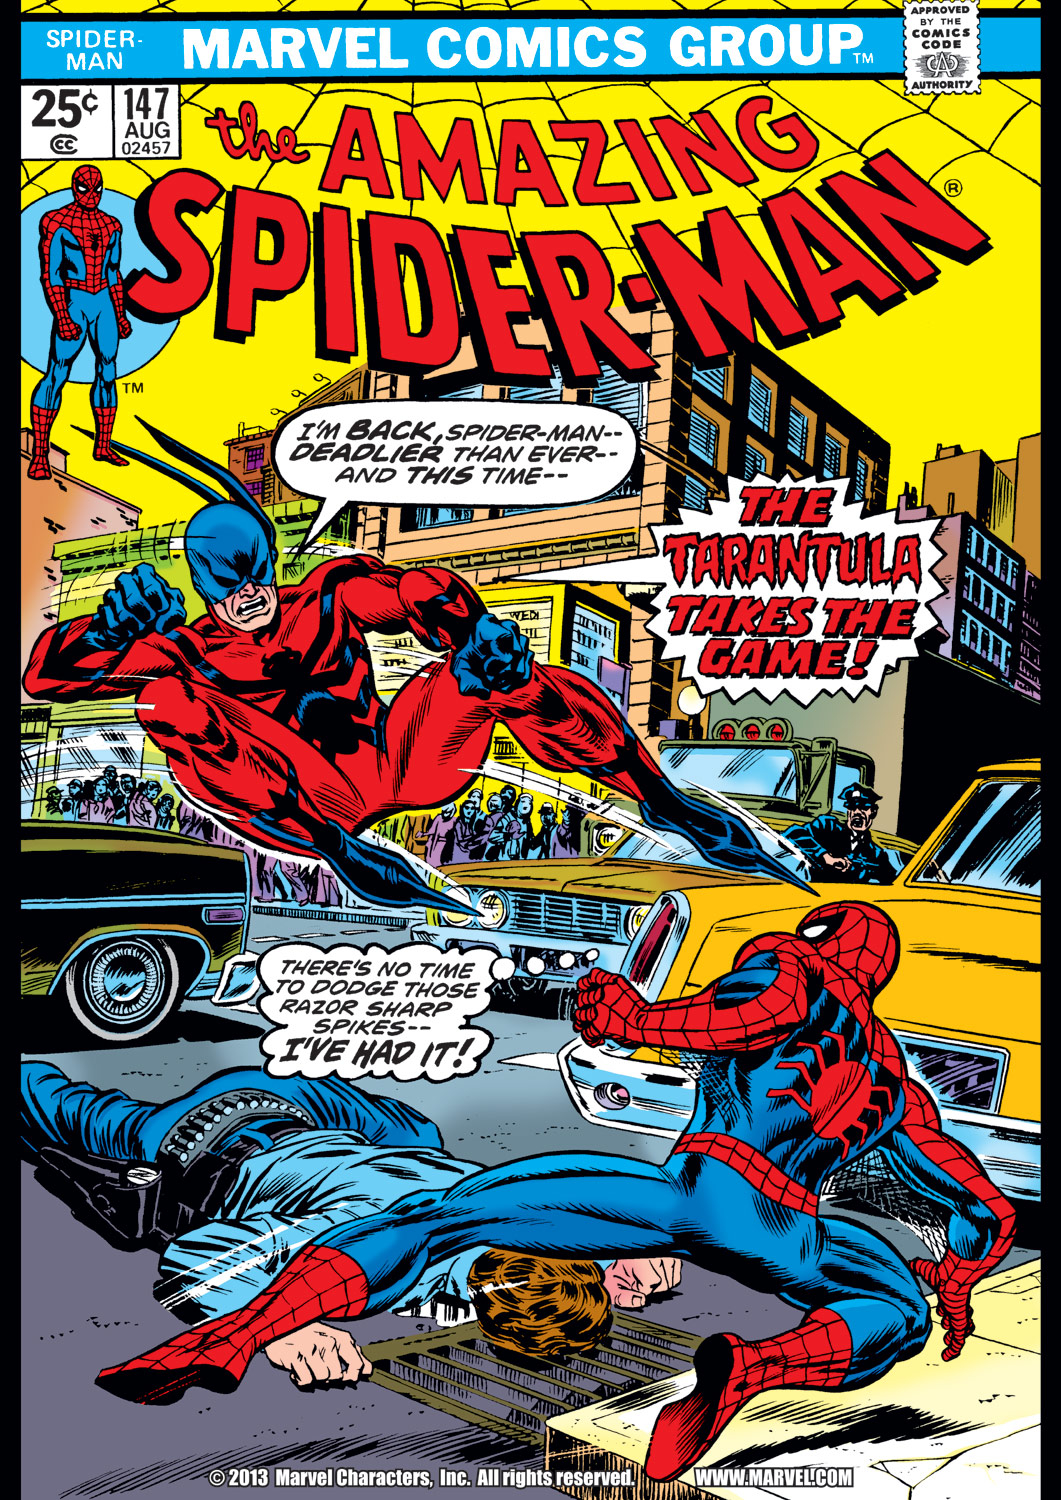 The Amazing Spider-Man (1963) 147 Page 1